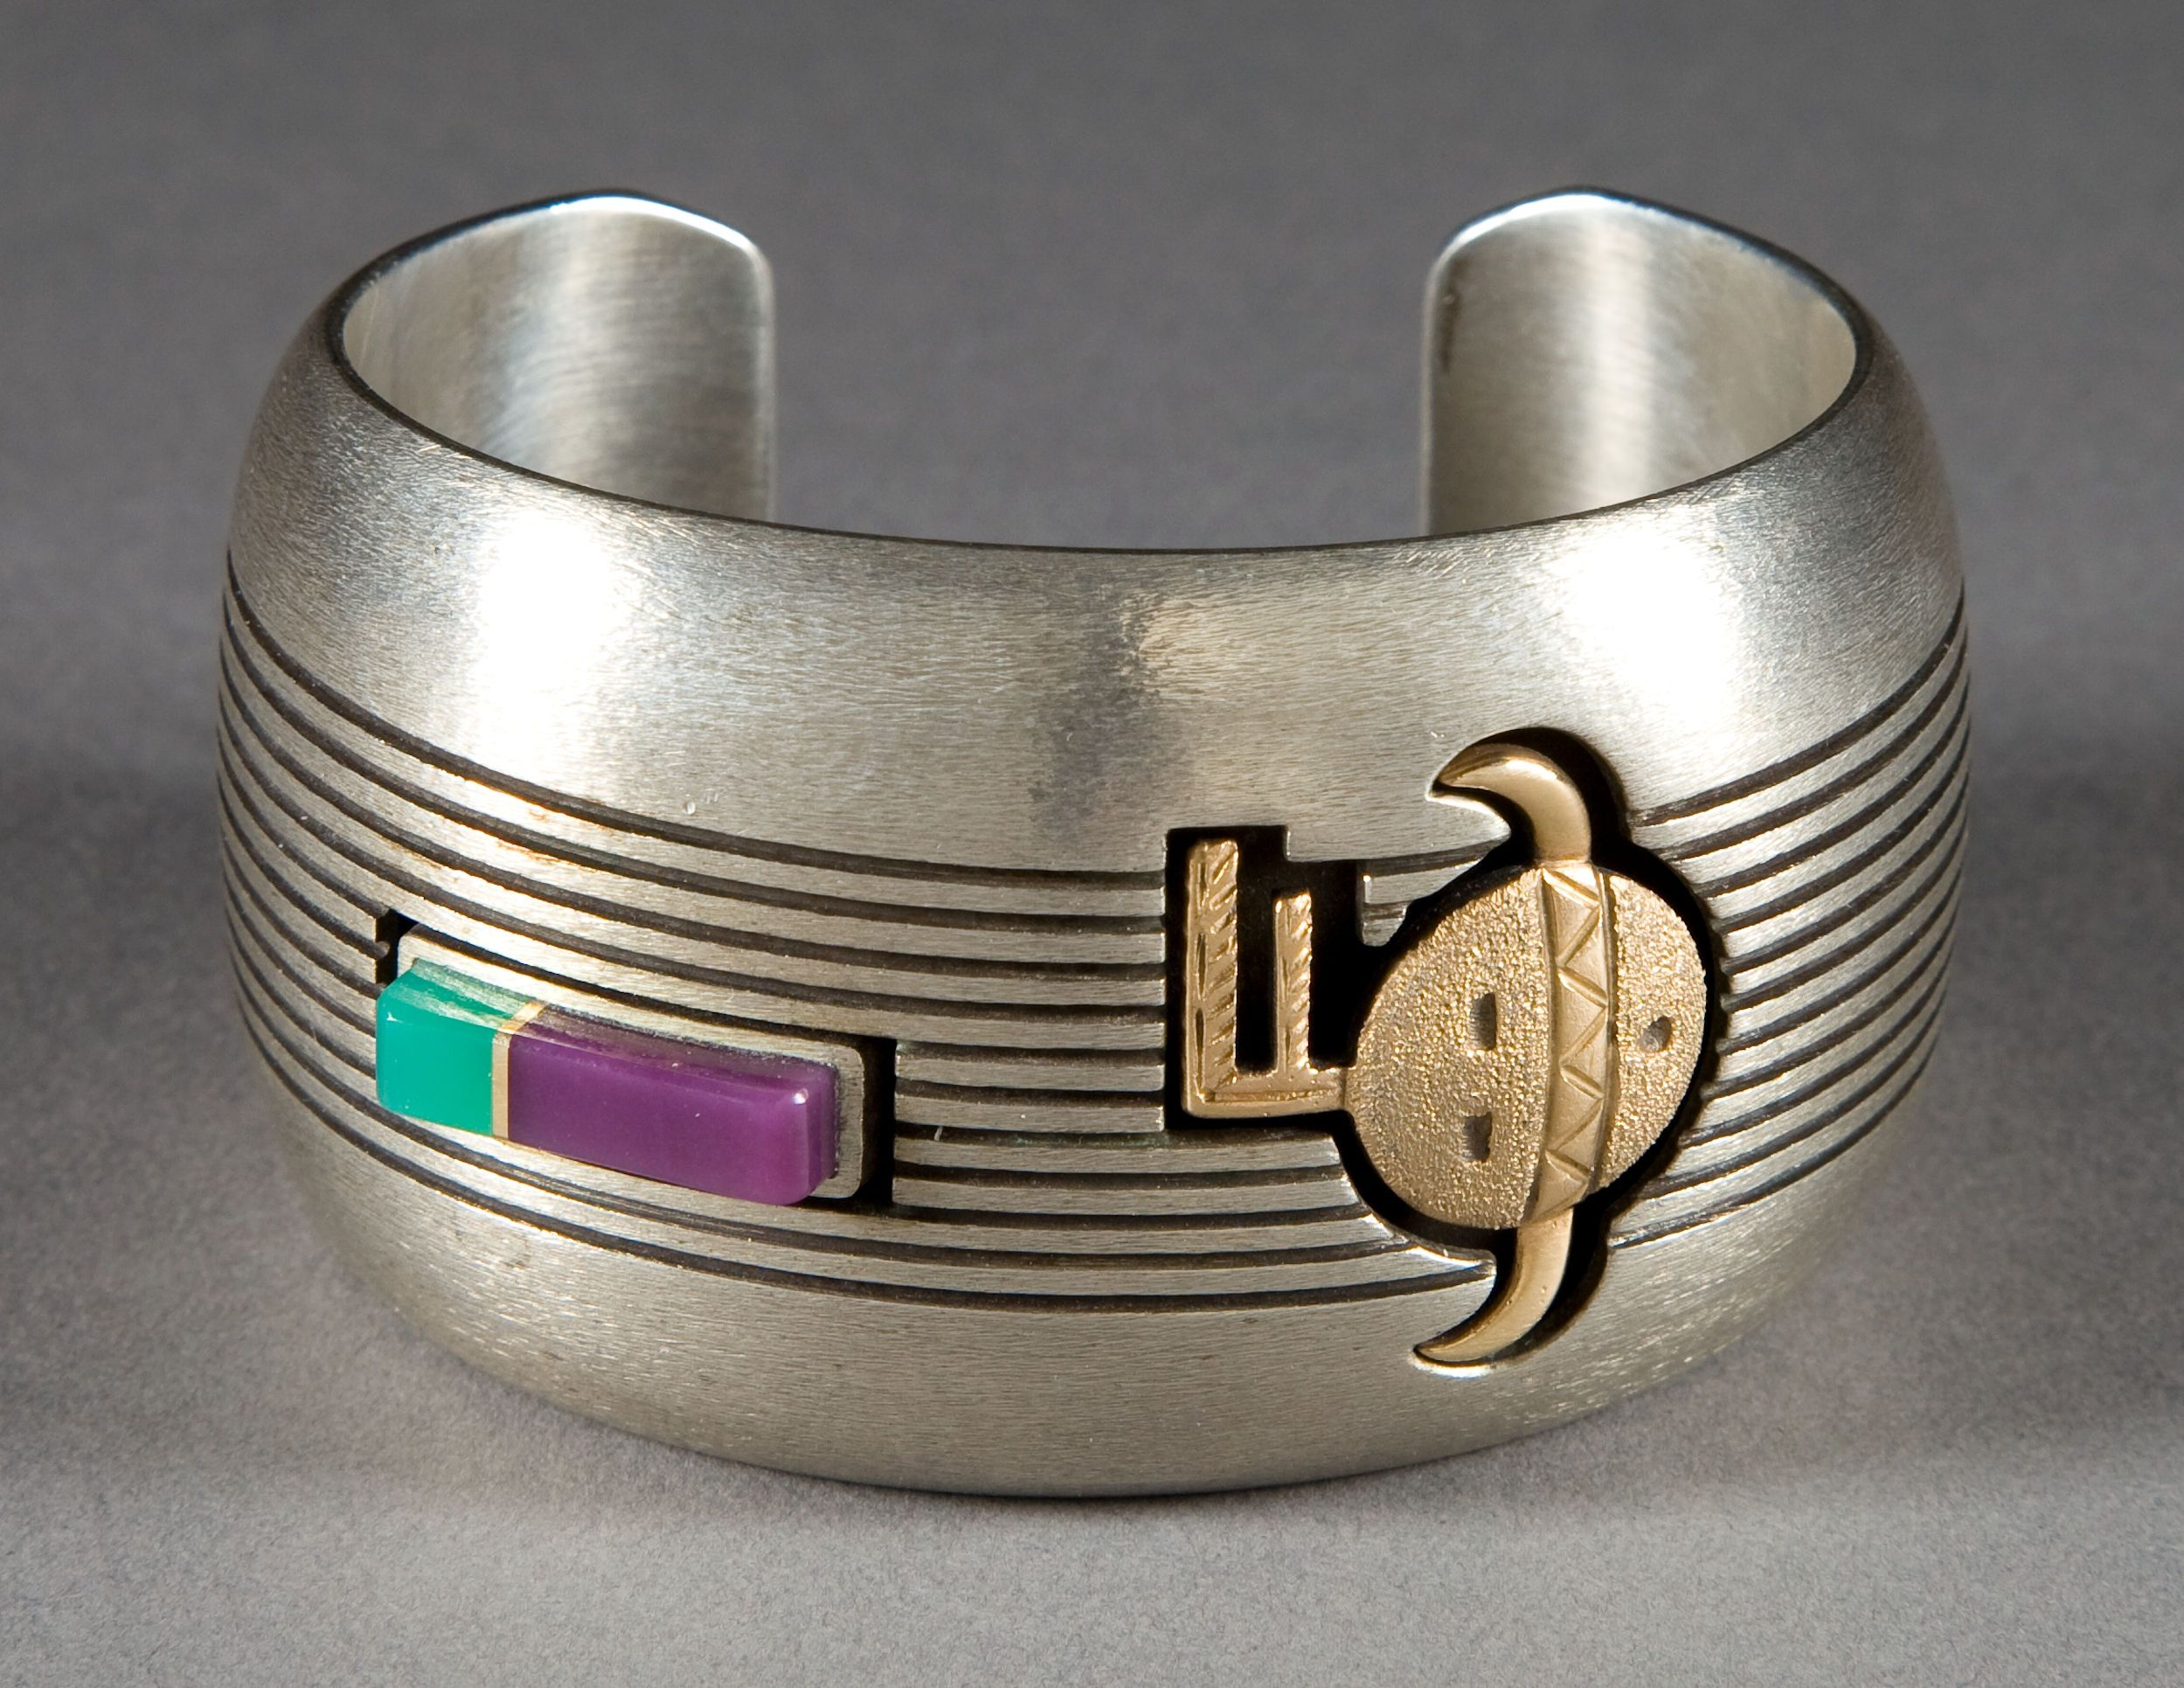 A NAVAJO SILVER, GOLD AND STONE CUFF BRACELET. James Little. | Lot #50023 | Heritage Auctions